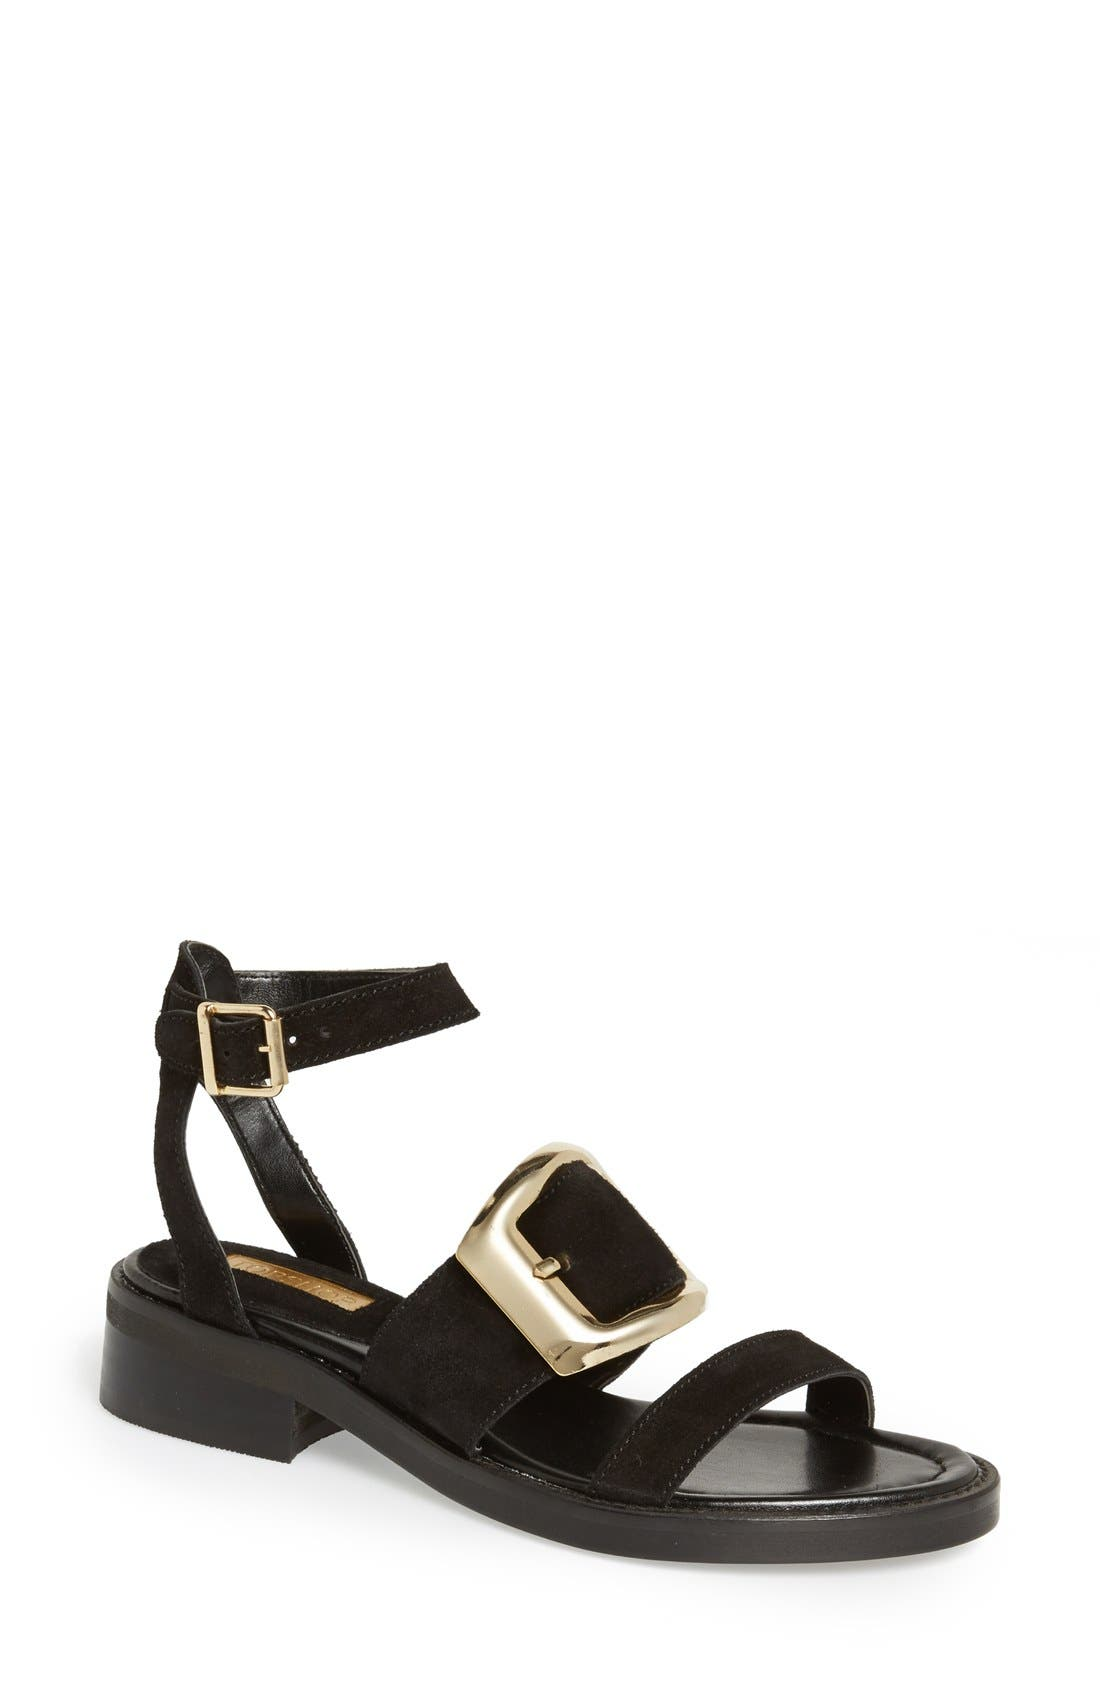 Alternate Image 1 Selected - Topshop 'Francis' Sandal